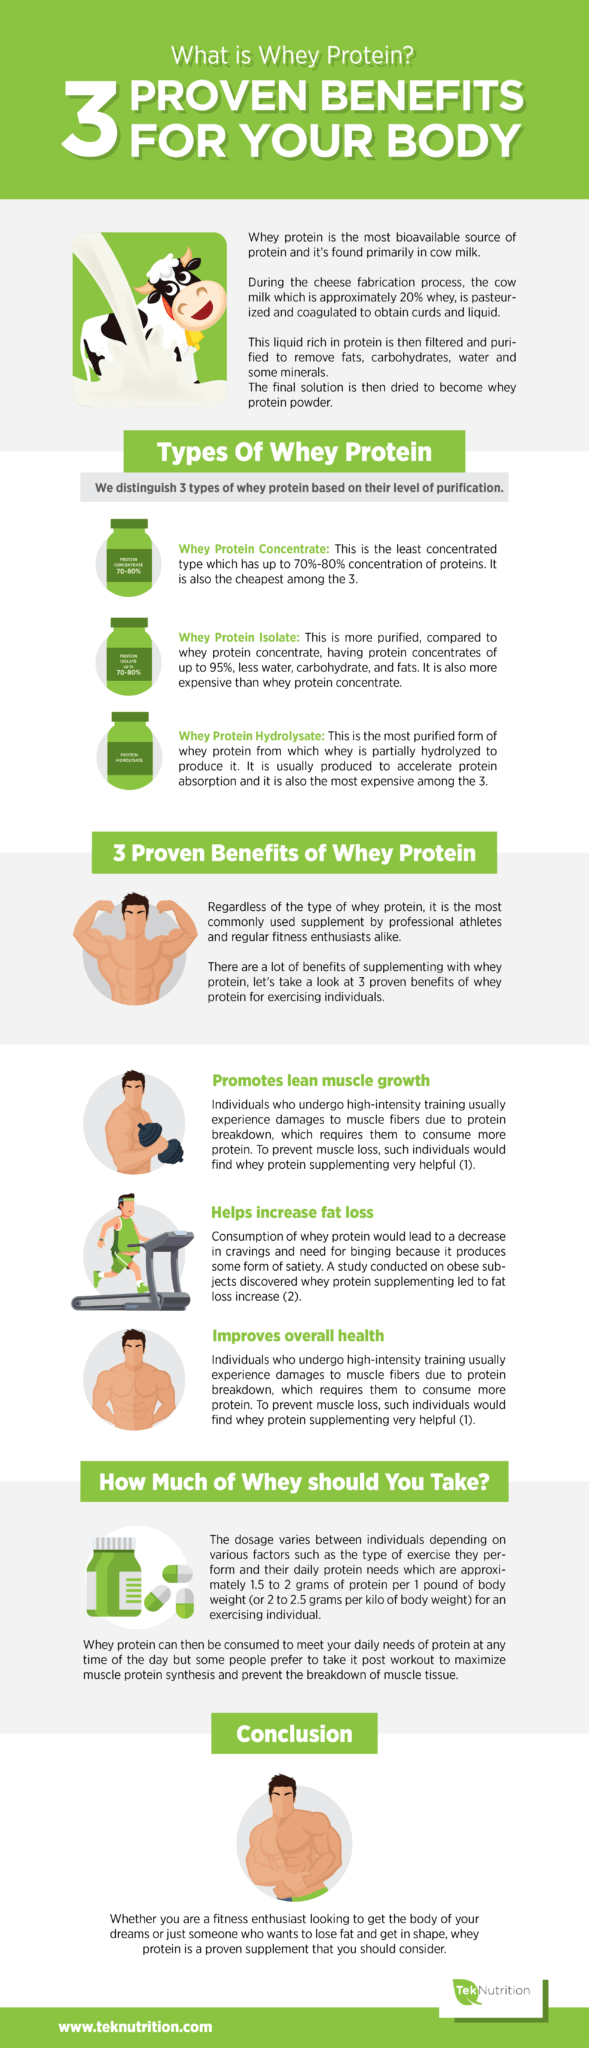 What is Whey Protein? 3 Proven Benefits for Your Body